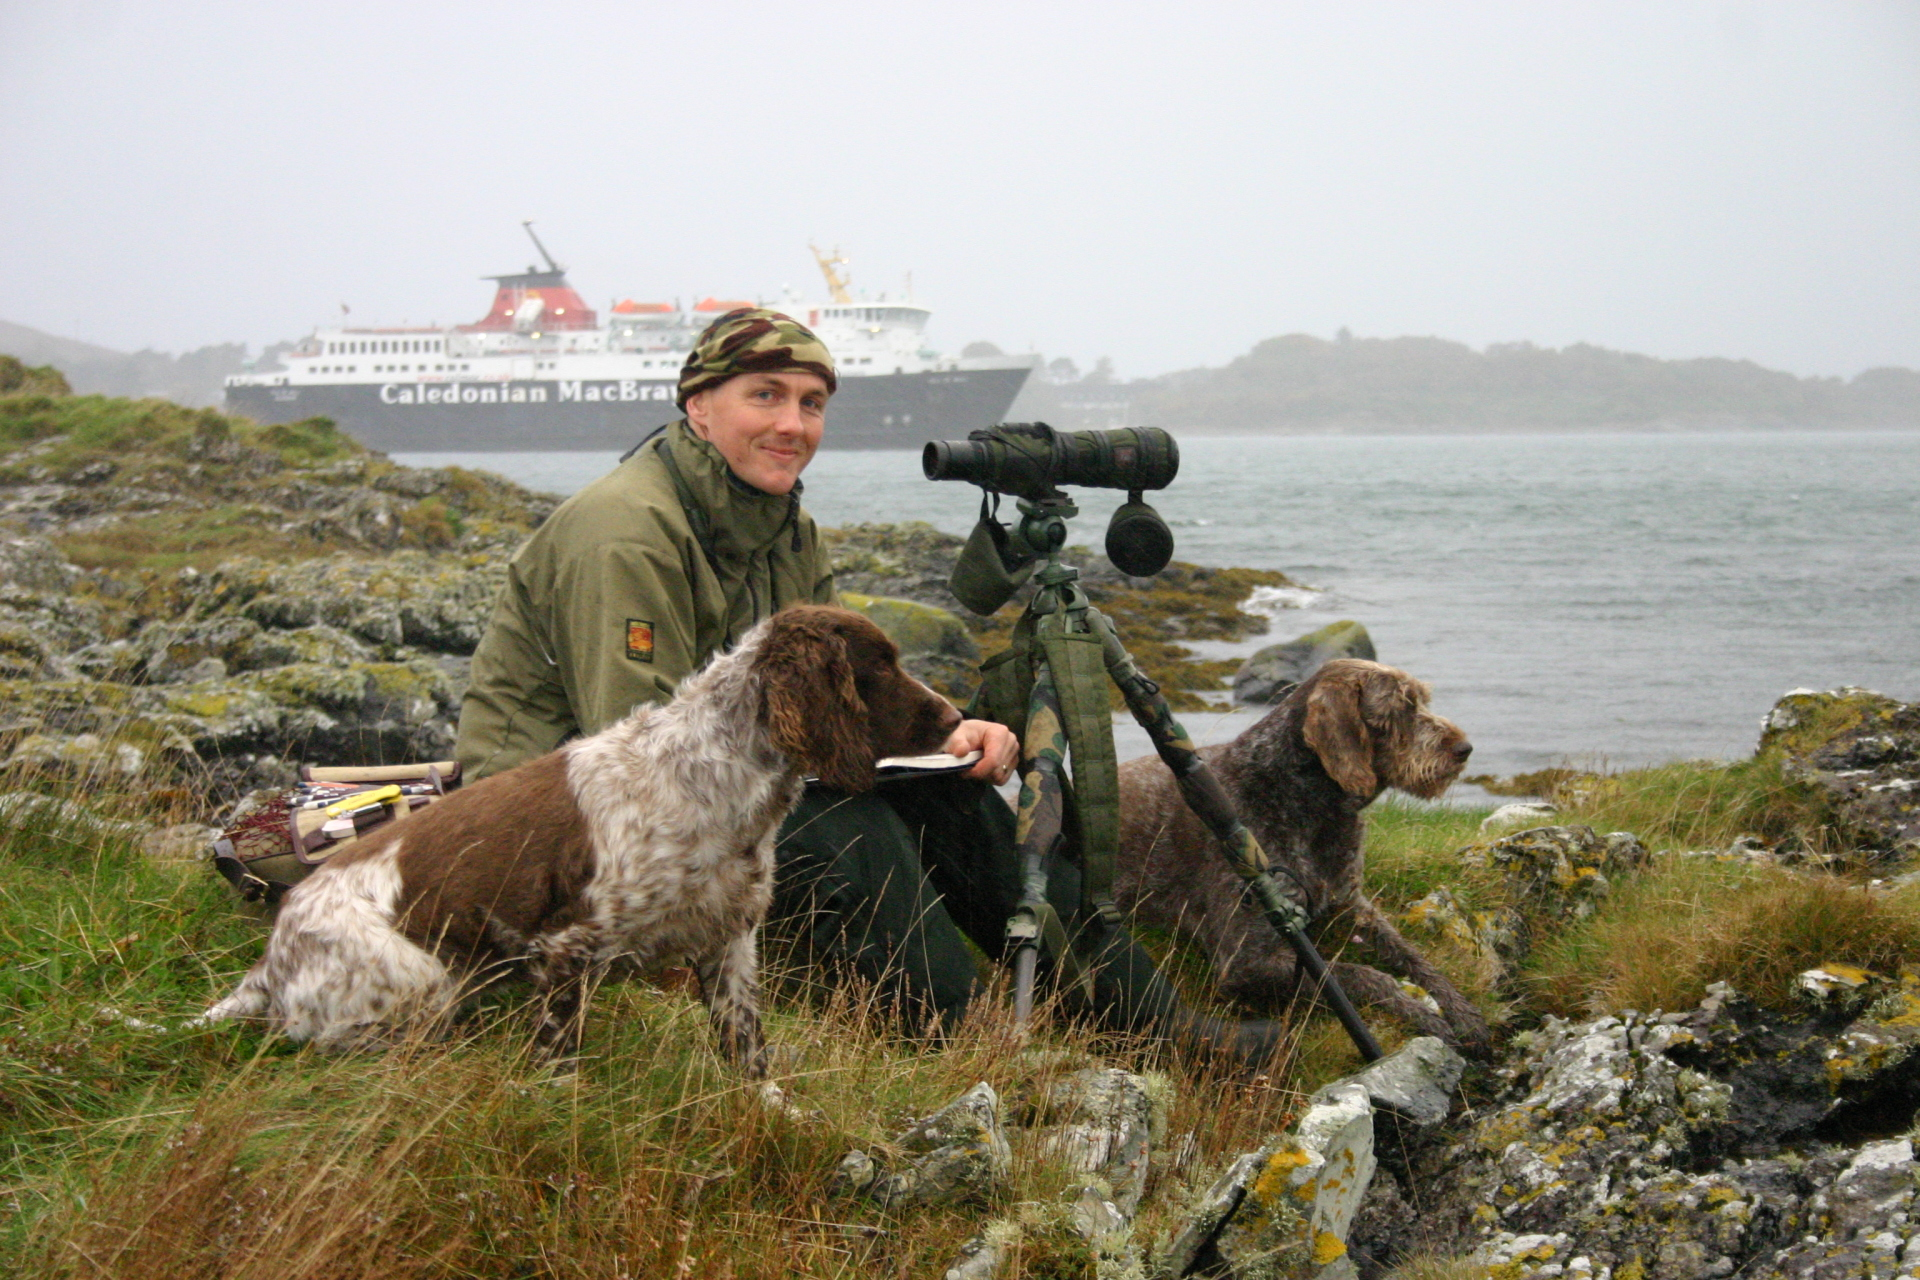 David , Skye and Lily, Craignure, Mull